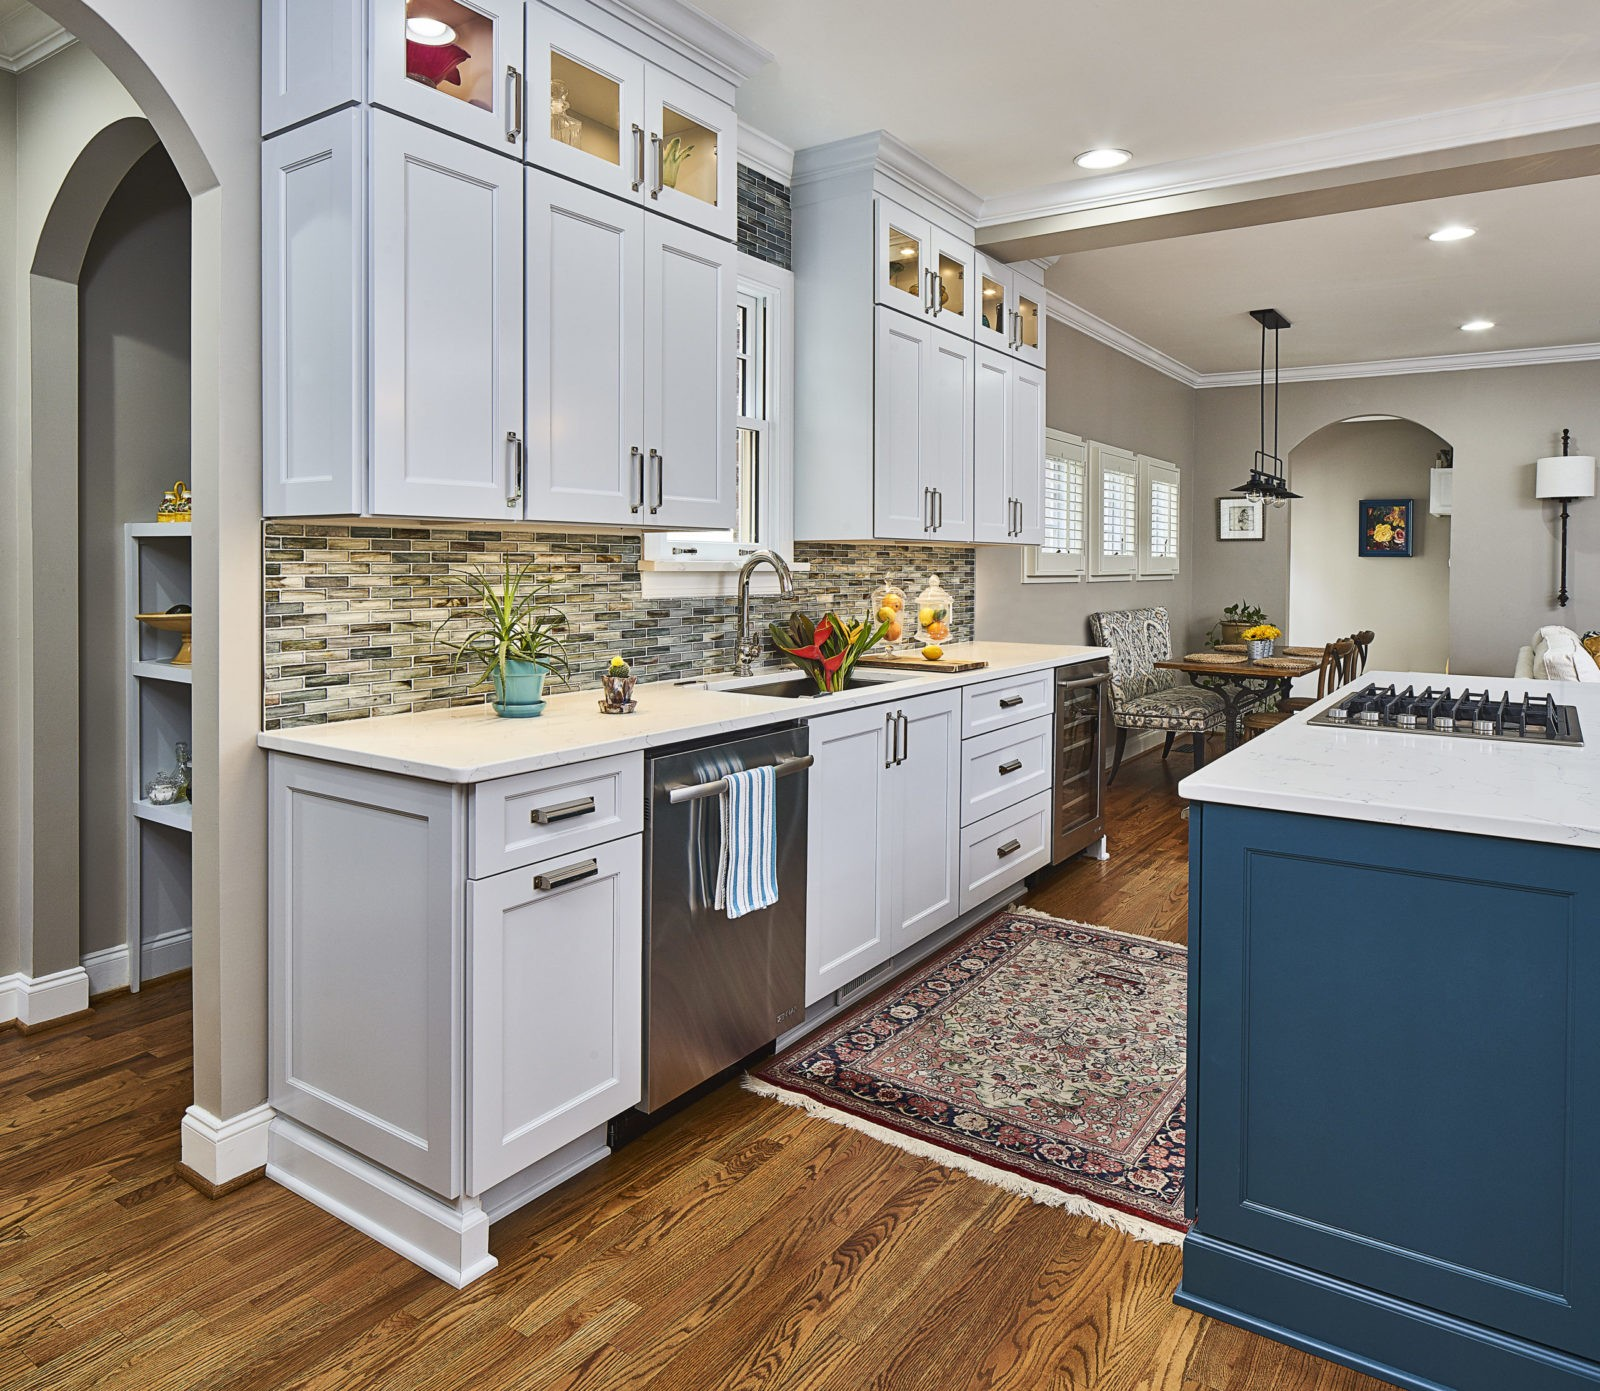 kitchen-remodel-kitchen-and-living-room-ideas